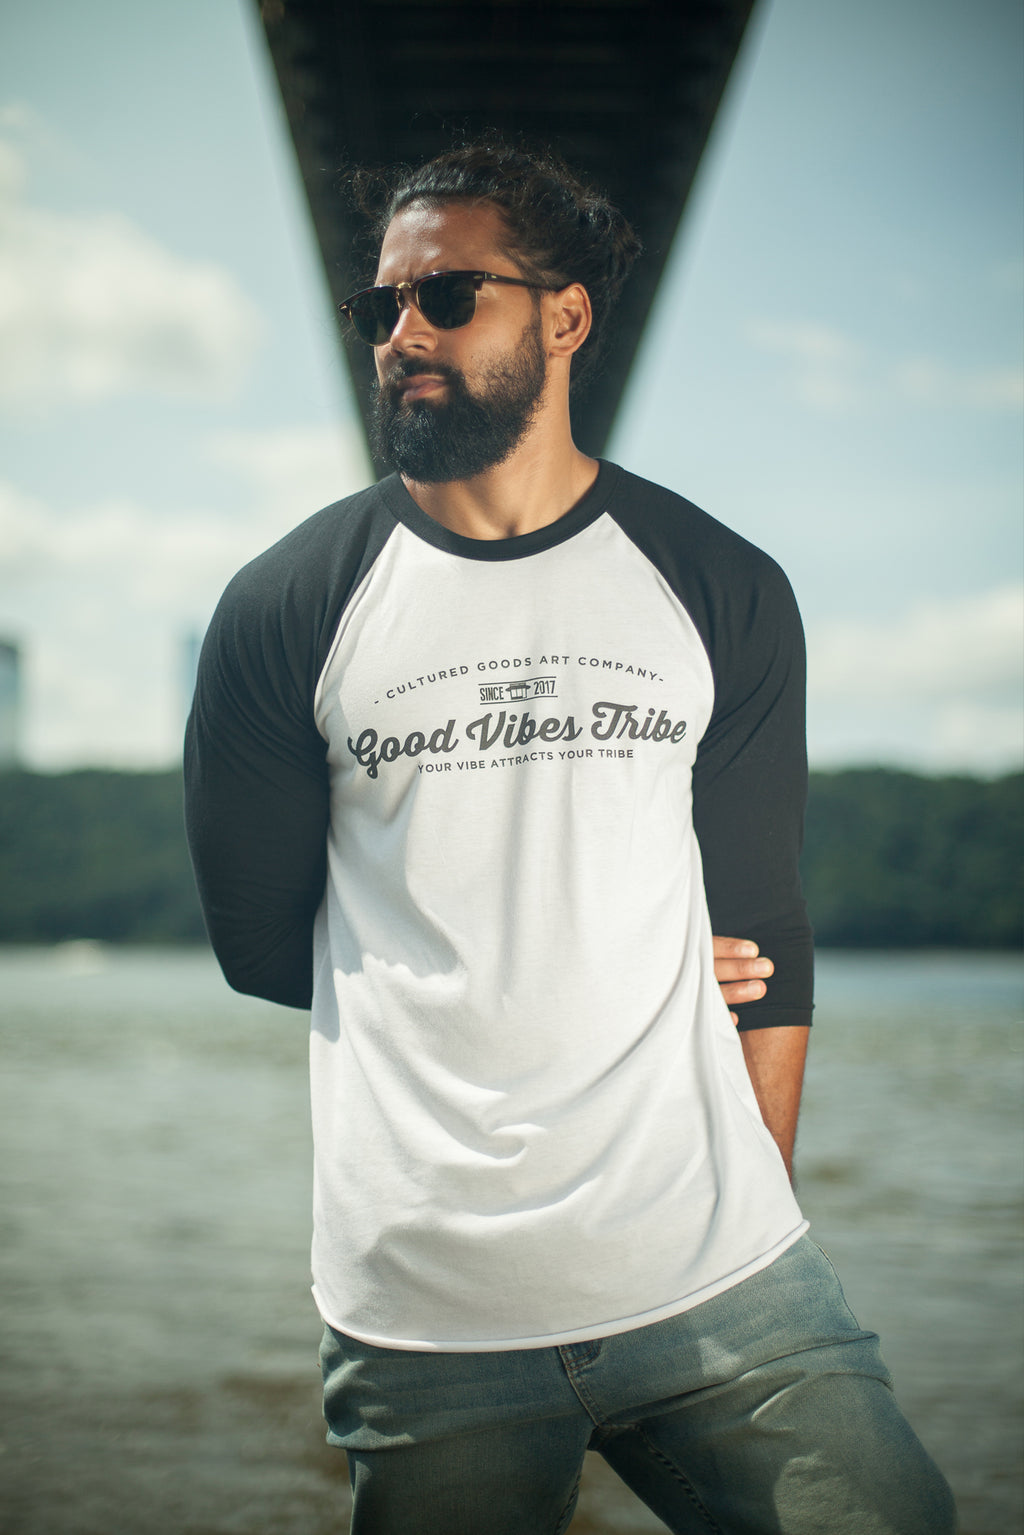 Good Vibes Tribe 3/4 sleeve raglan shirt